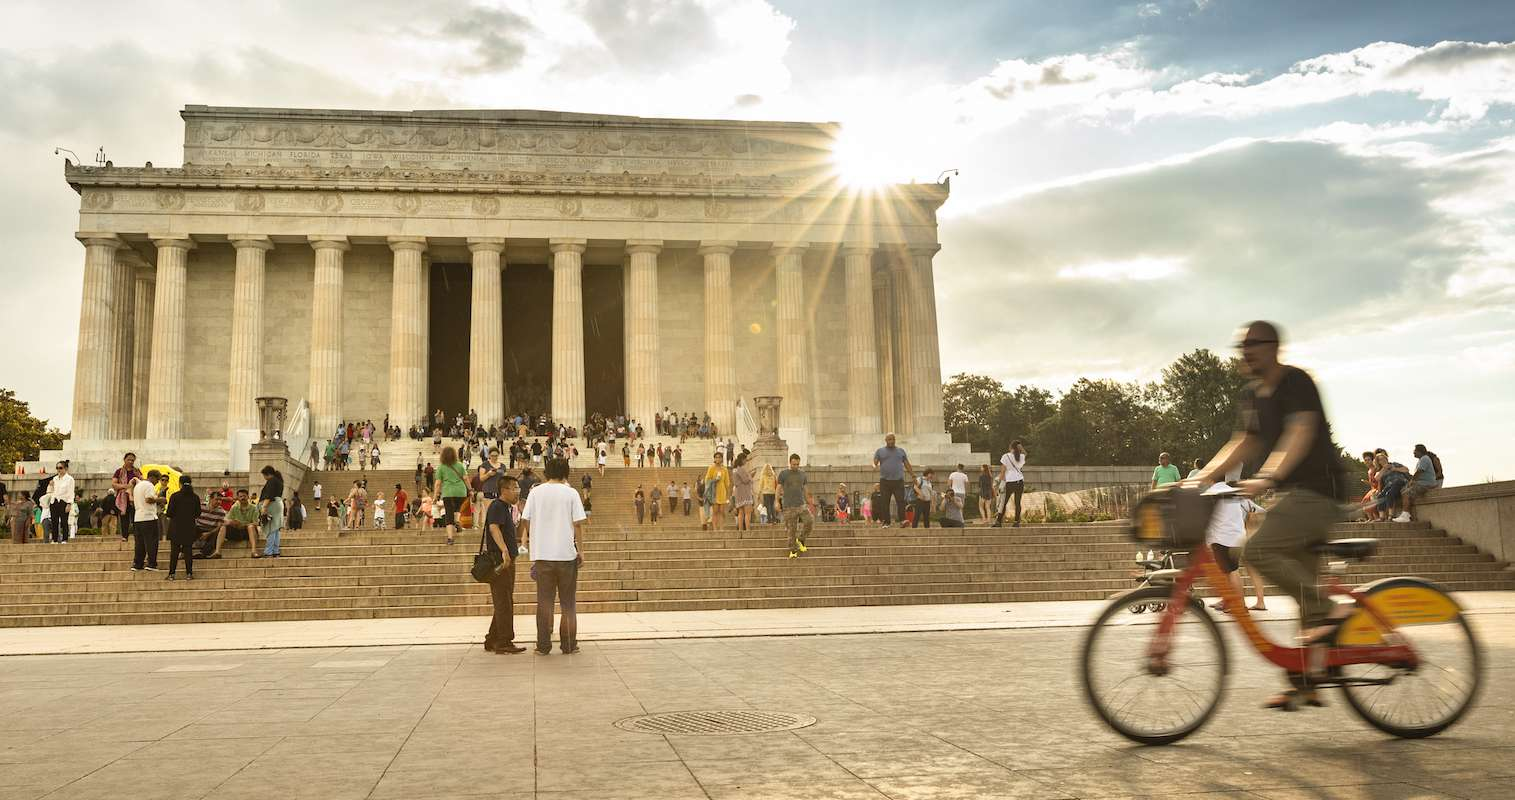 A rider on a bike glides by the Lincoln Monument in Washington, DC